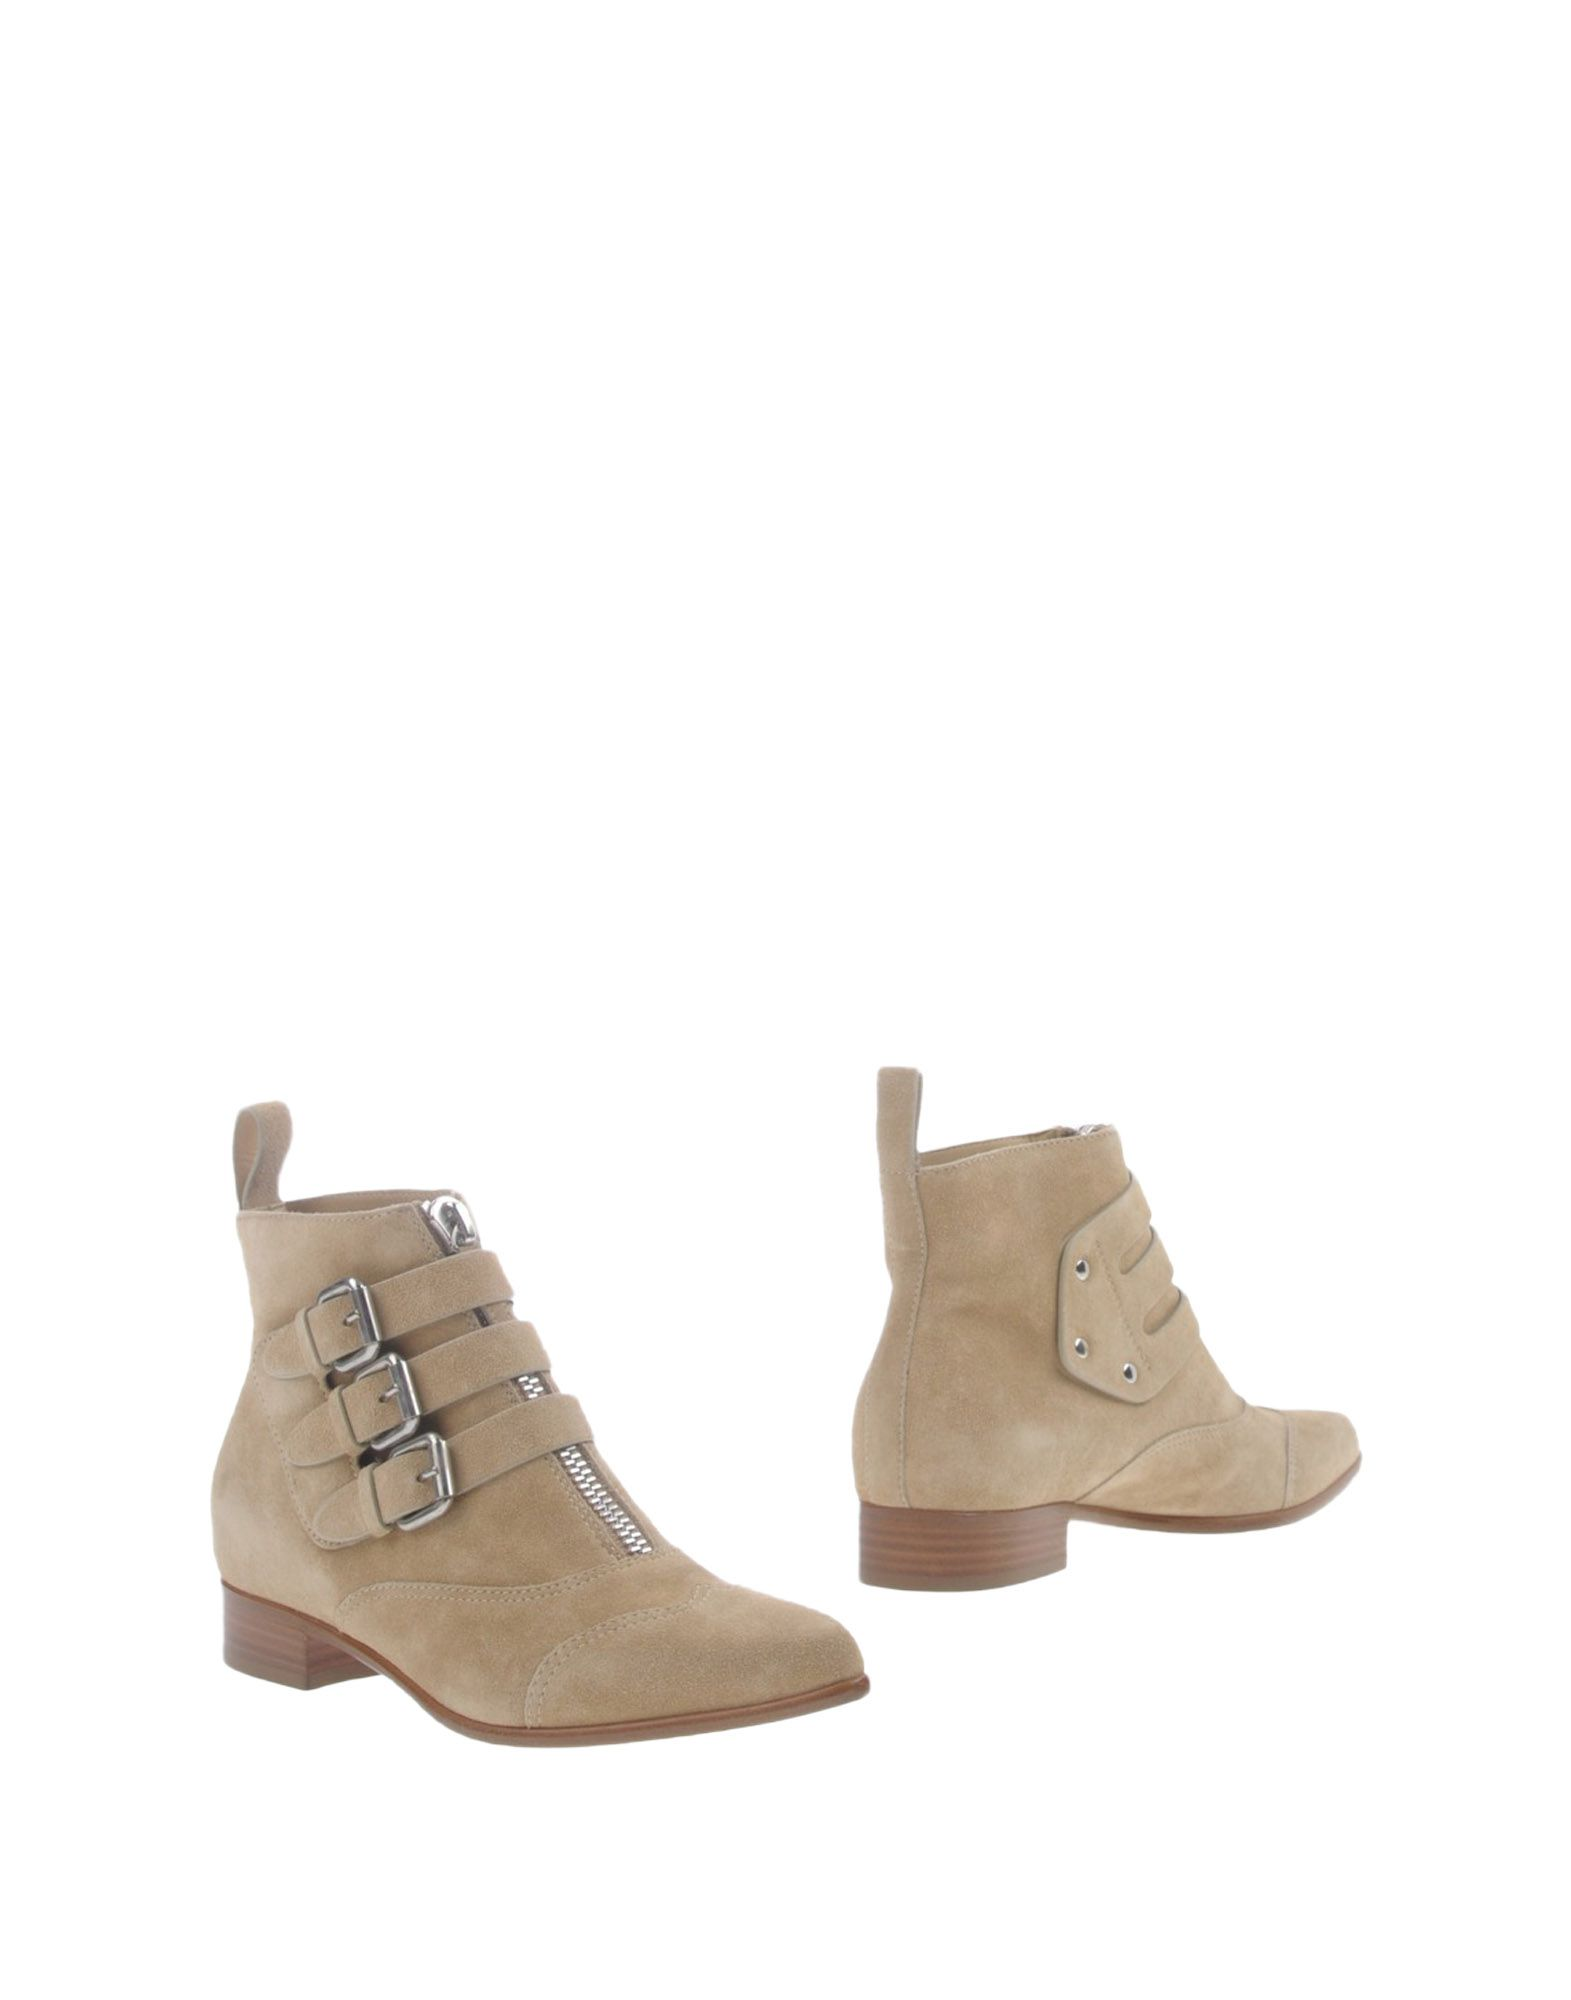 Tabitha Simmons Ankle Simmons Boot - Women Tabitha Simmons Ankle Ankle Boots online on  United Kingdom - 11394049IS 15c625